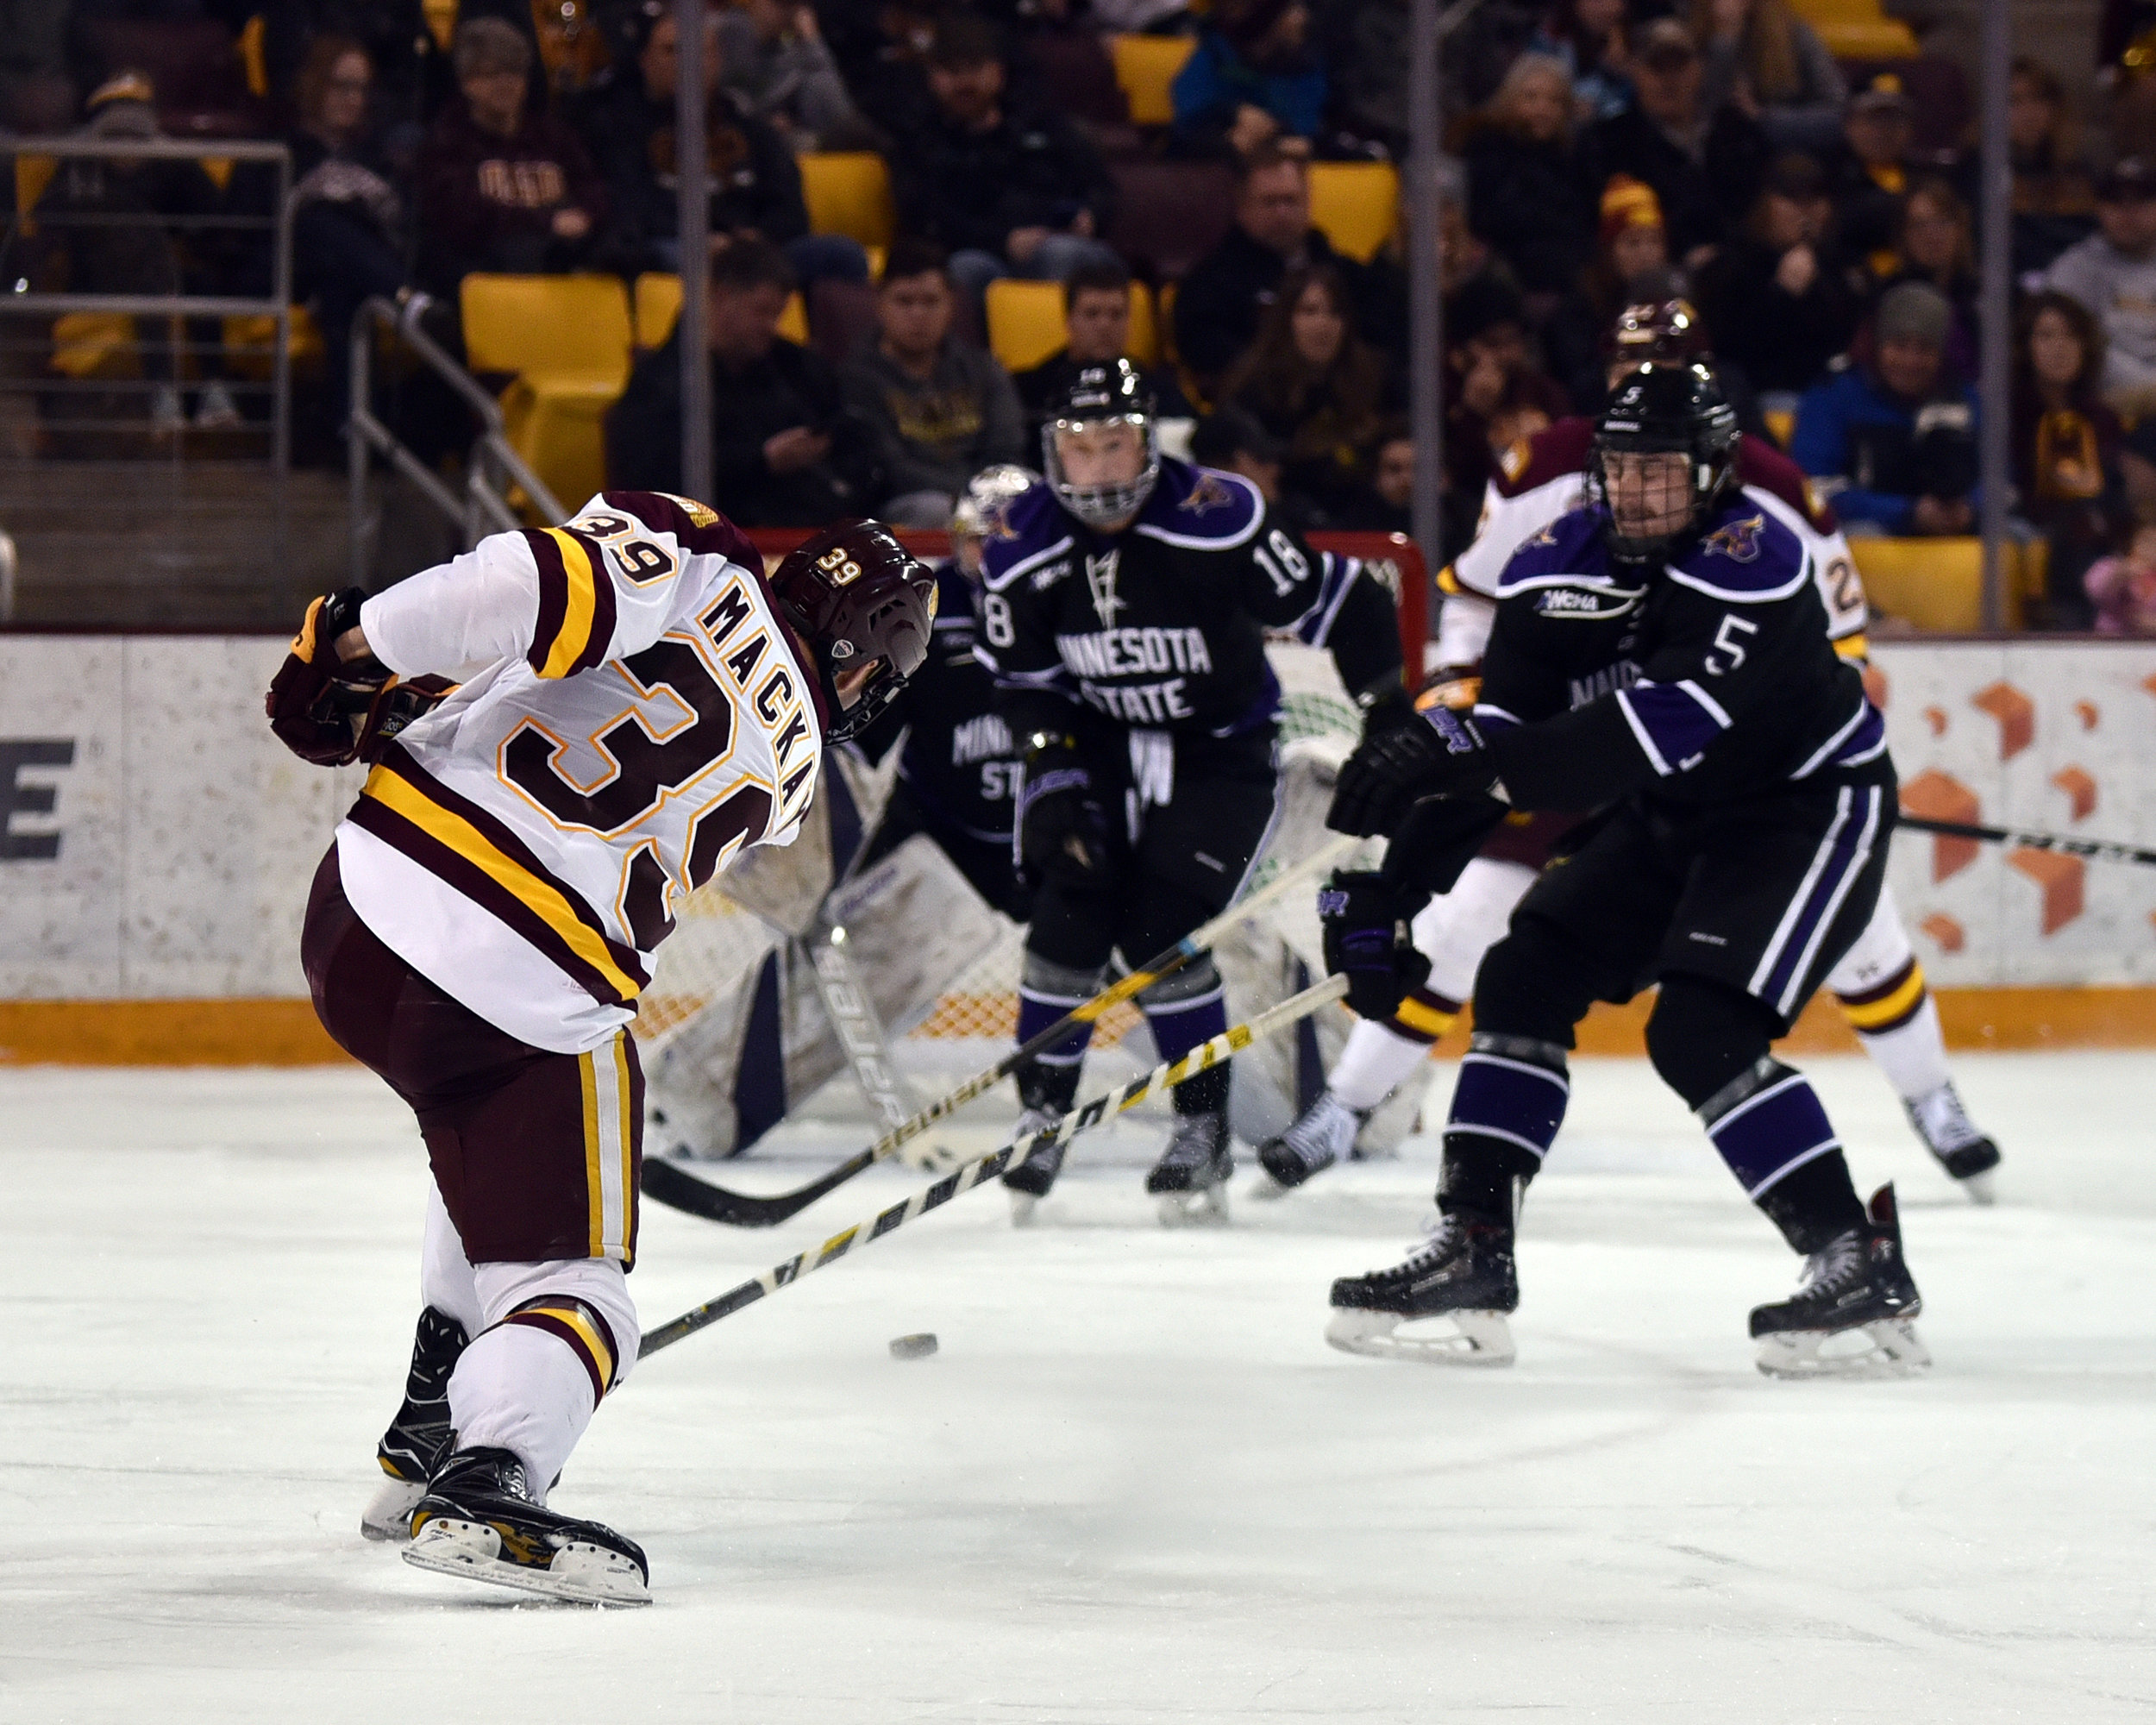 Junior forward Parker Mackay fires a shot at the Mankato net. Photo courtesy of Terry Norton